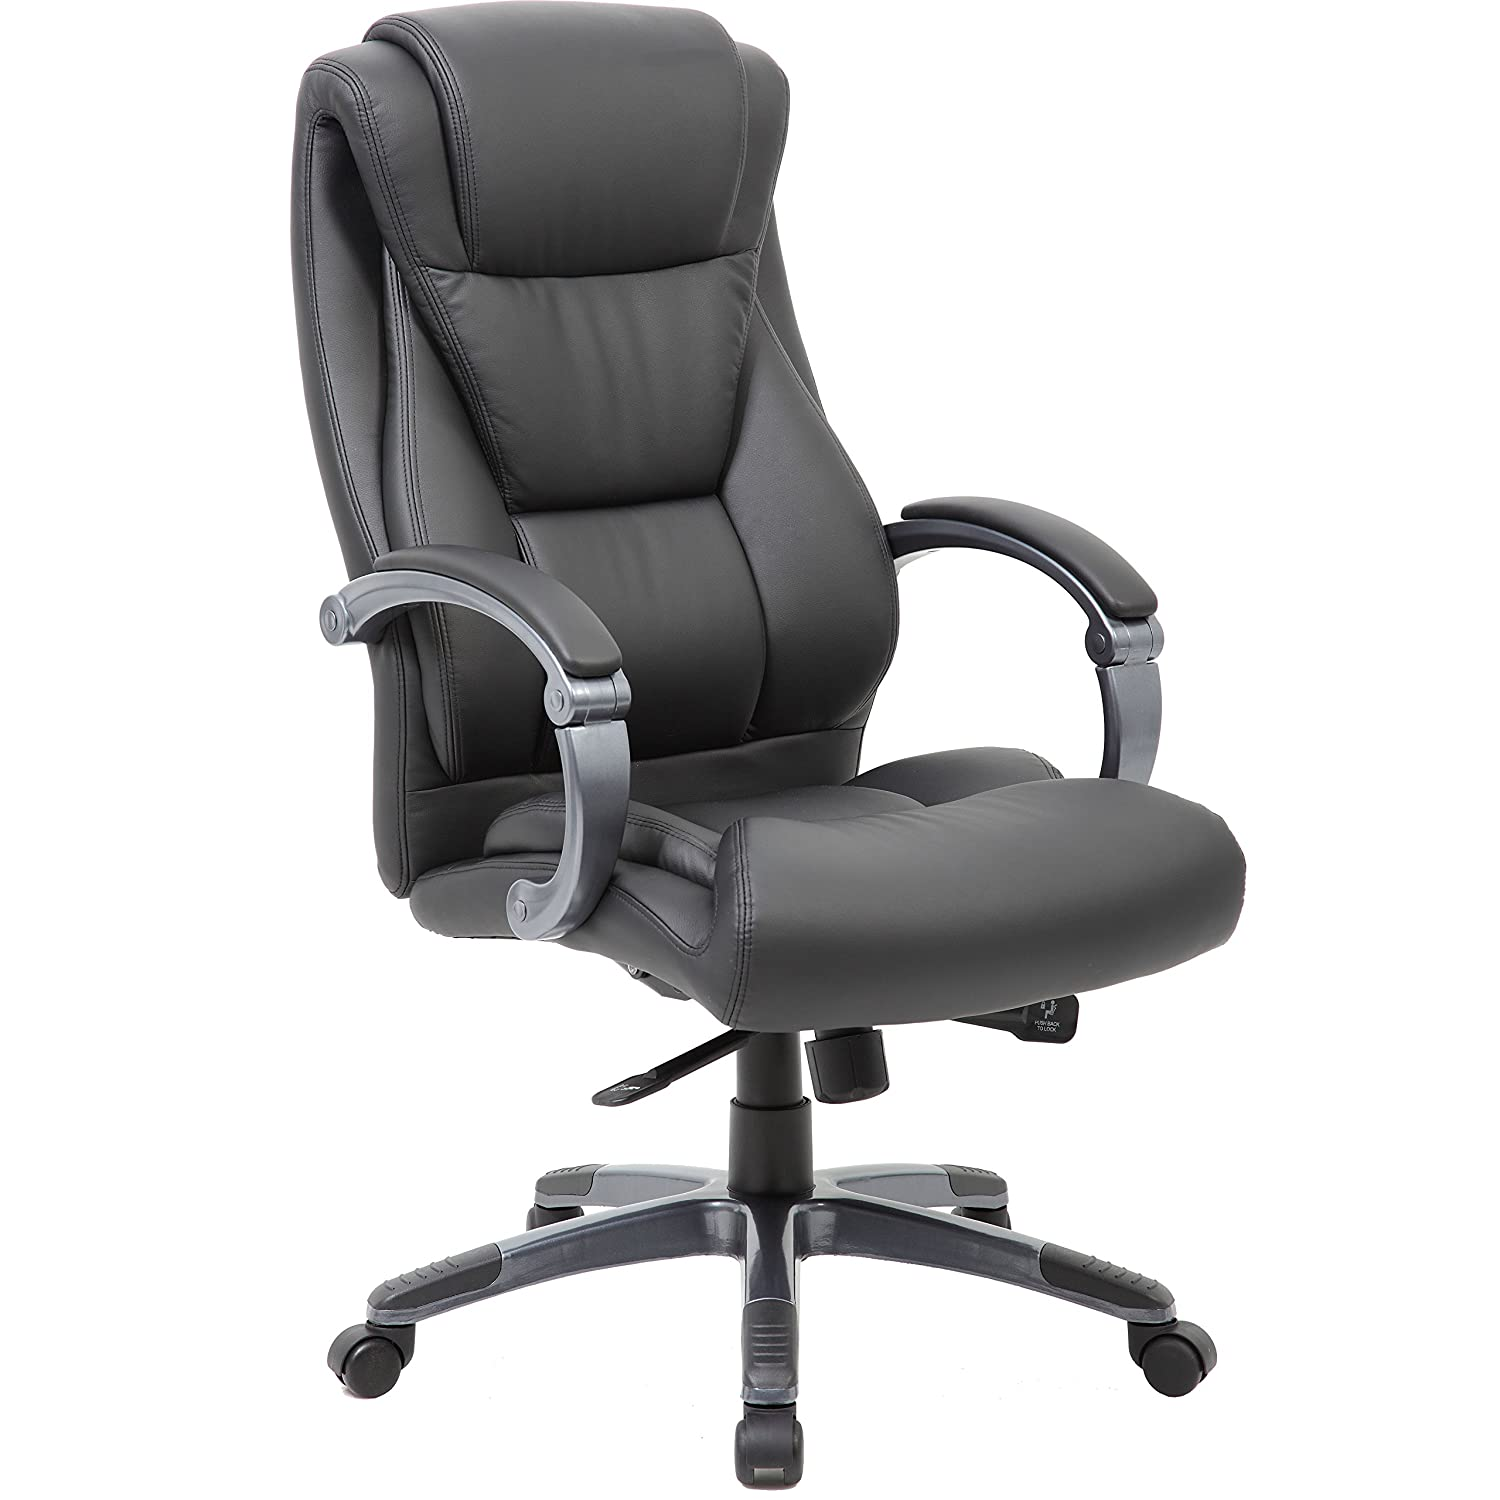 Best office chair 2016 - Top 30 Best Office Chairs Ergonomic Buying Guide 2016 2017 On Flipboardtop 30 Best Office Chairs Ergonomic Buying Guide 2016 2017 On